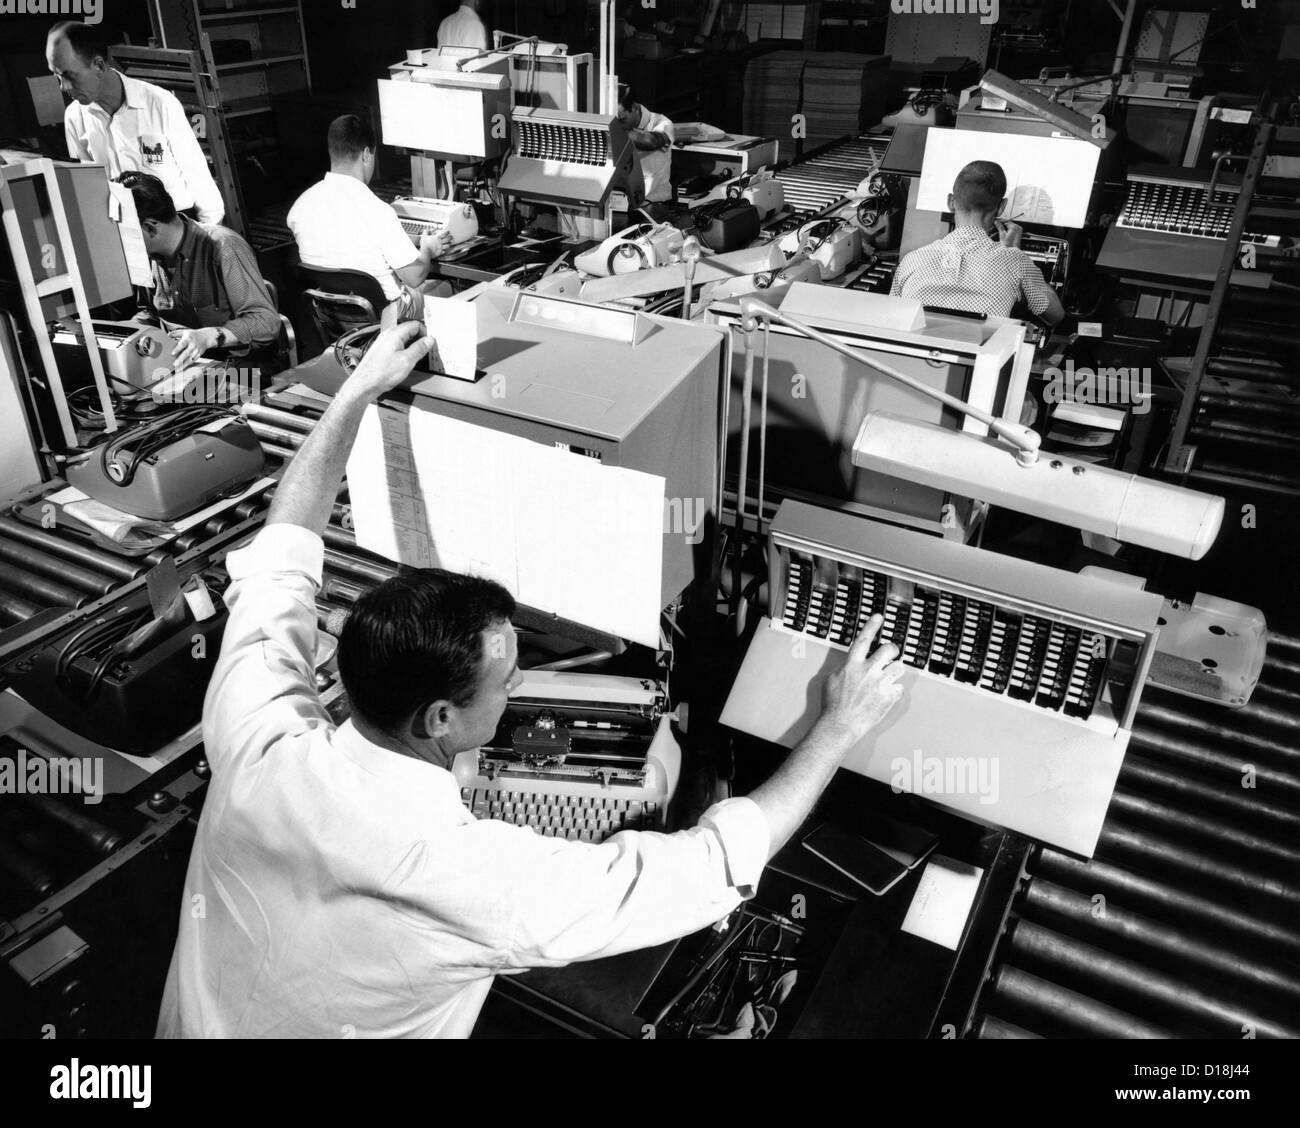 The assembly line at IBM's Lexington, Kentucky, typewriter plant. Each inspector reports typewriter defects to the Stock Photo